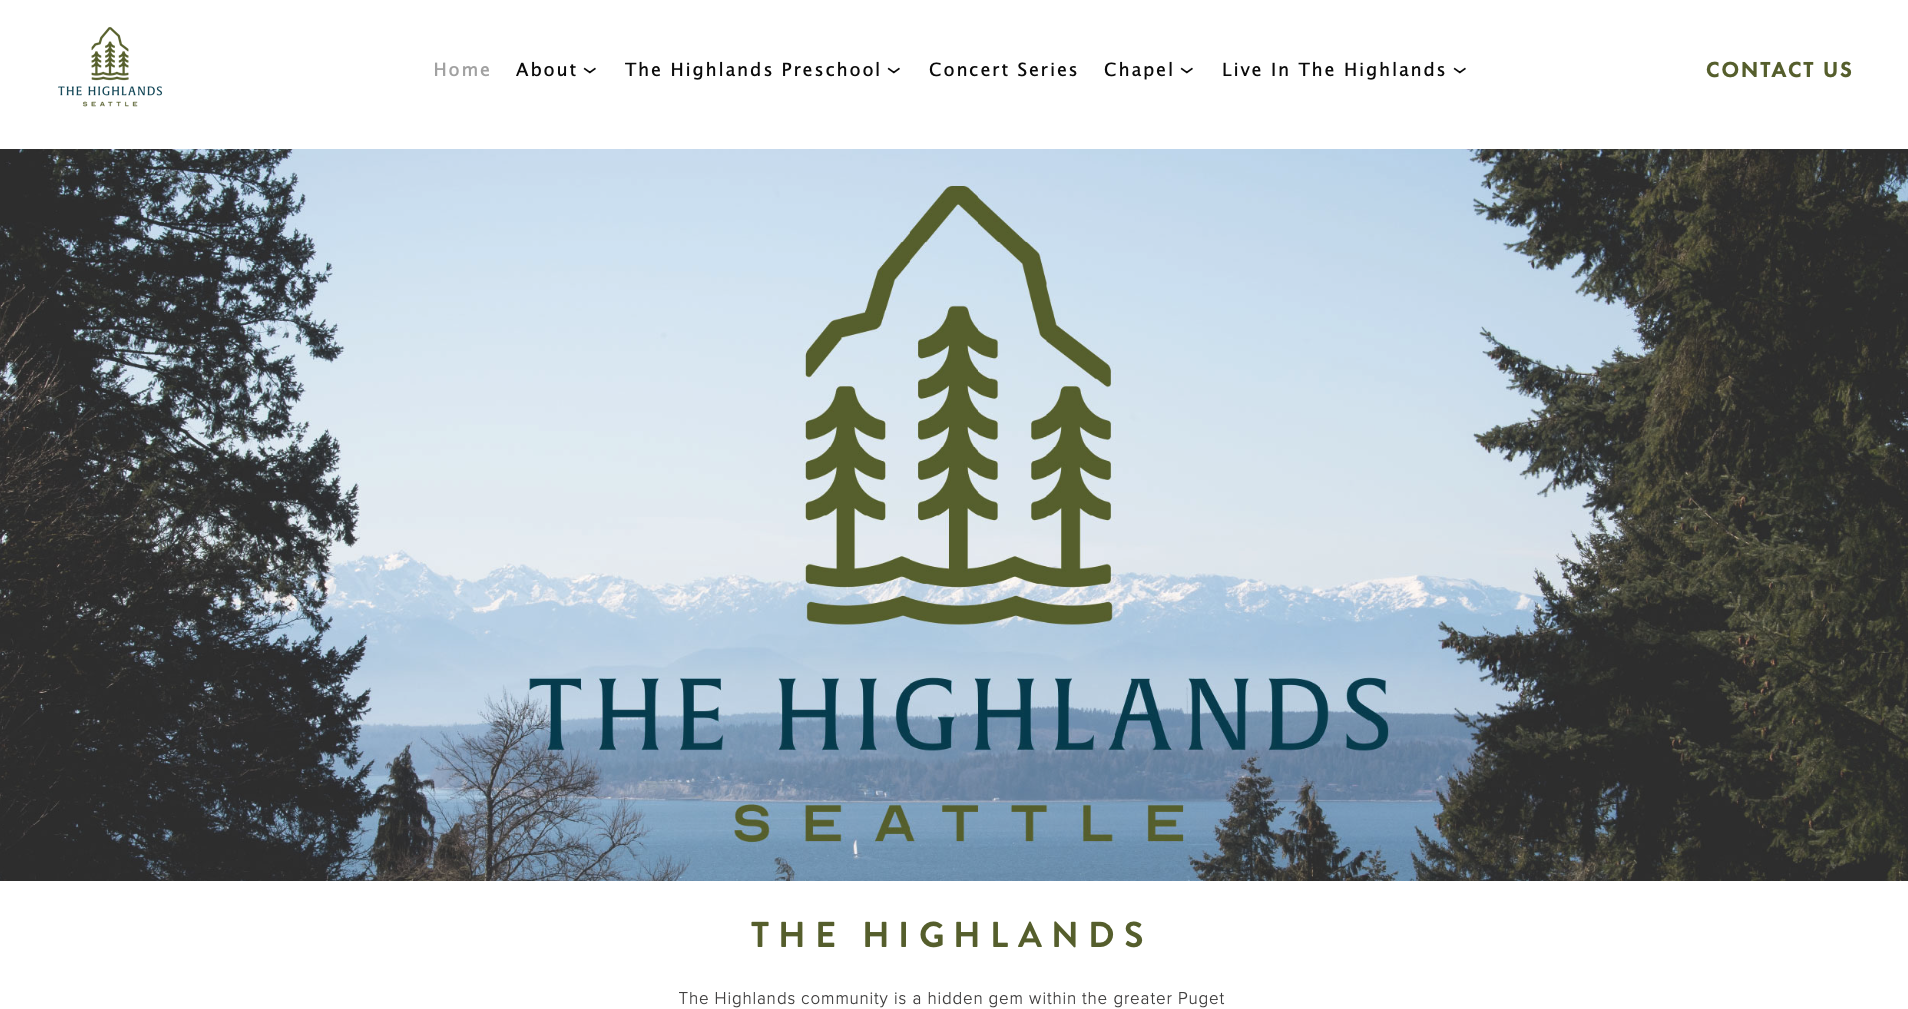 THE HIGHLANDS - SeaTTLE